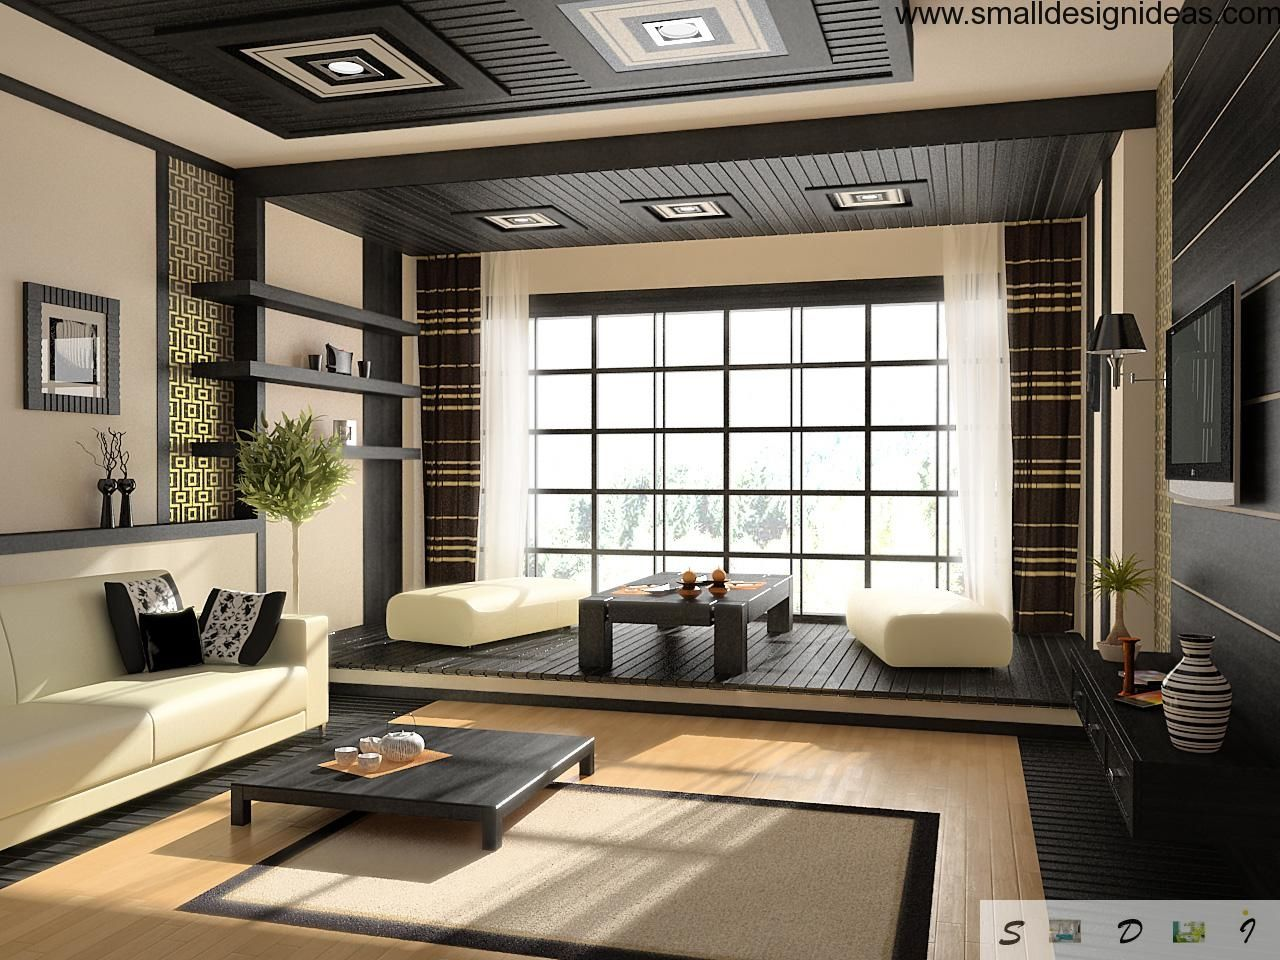 22 Asian Interior Decorating Ideas Bringing Anese Minimalist Style Into Modern Homes